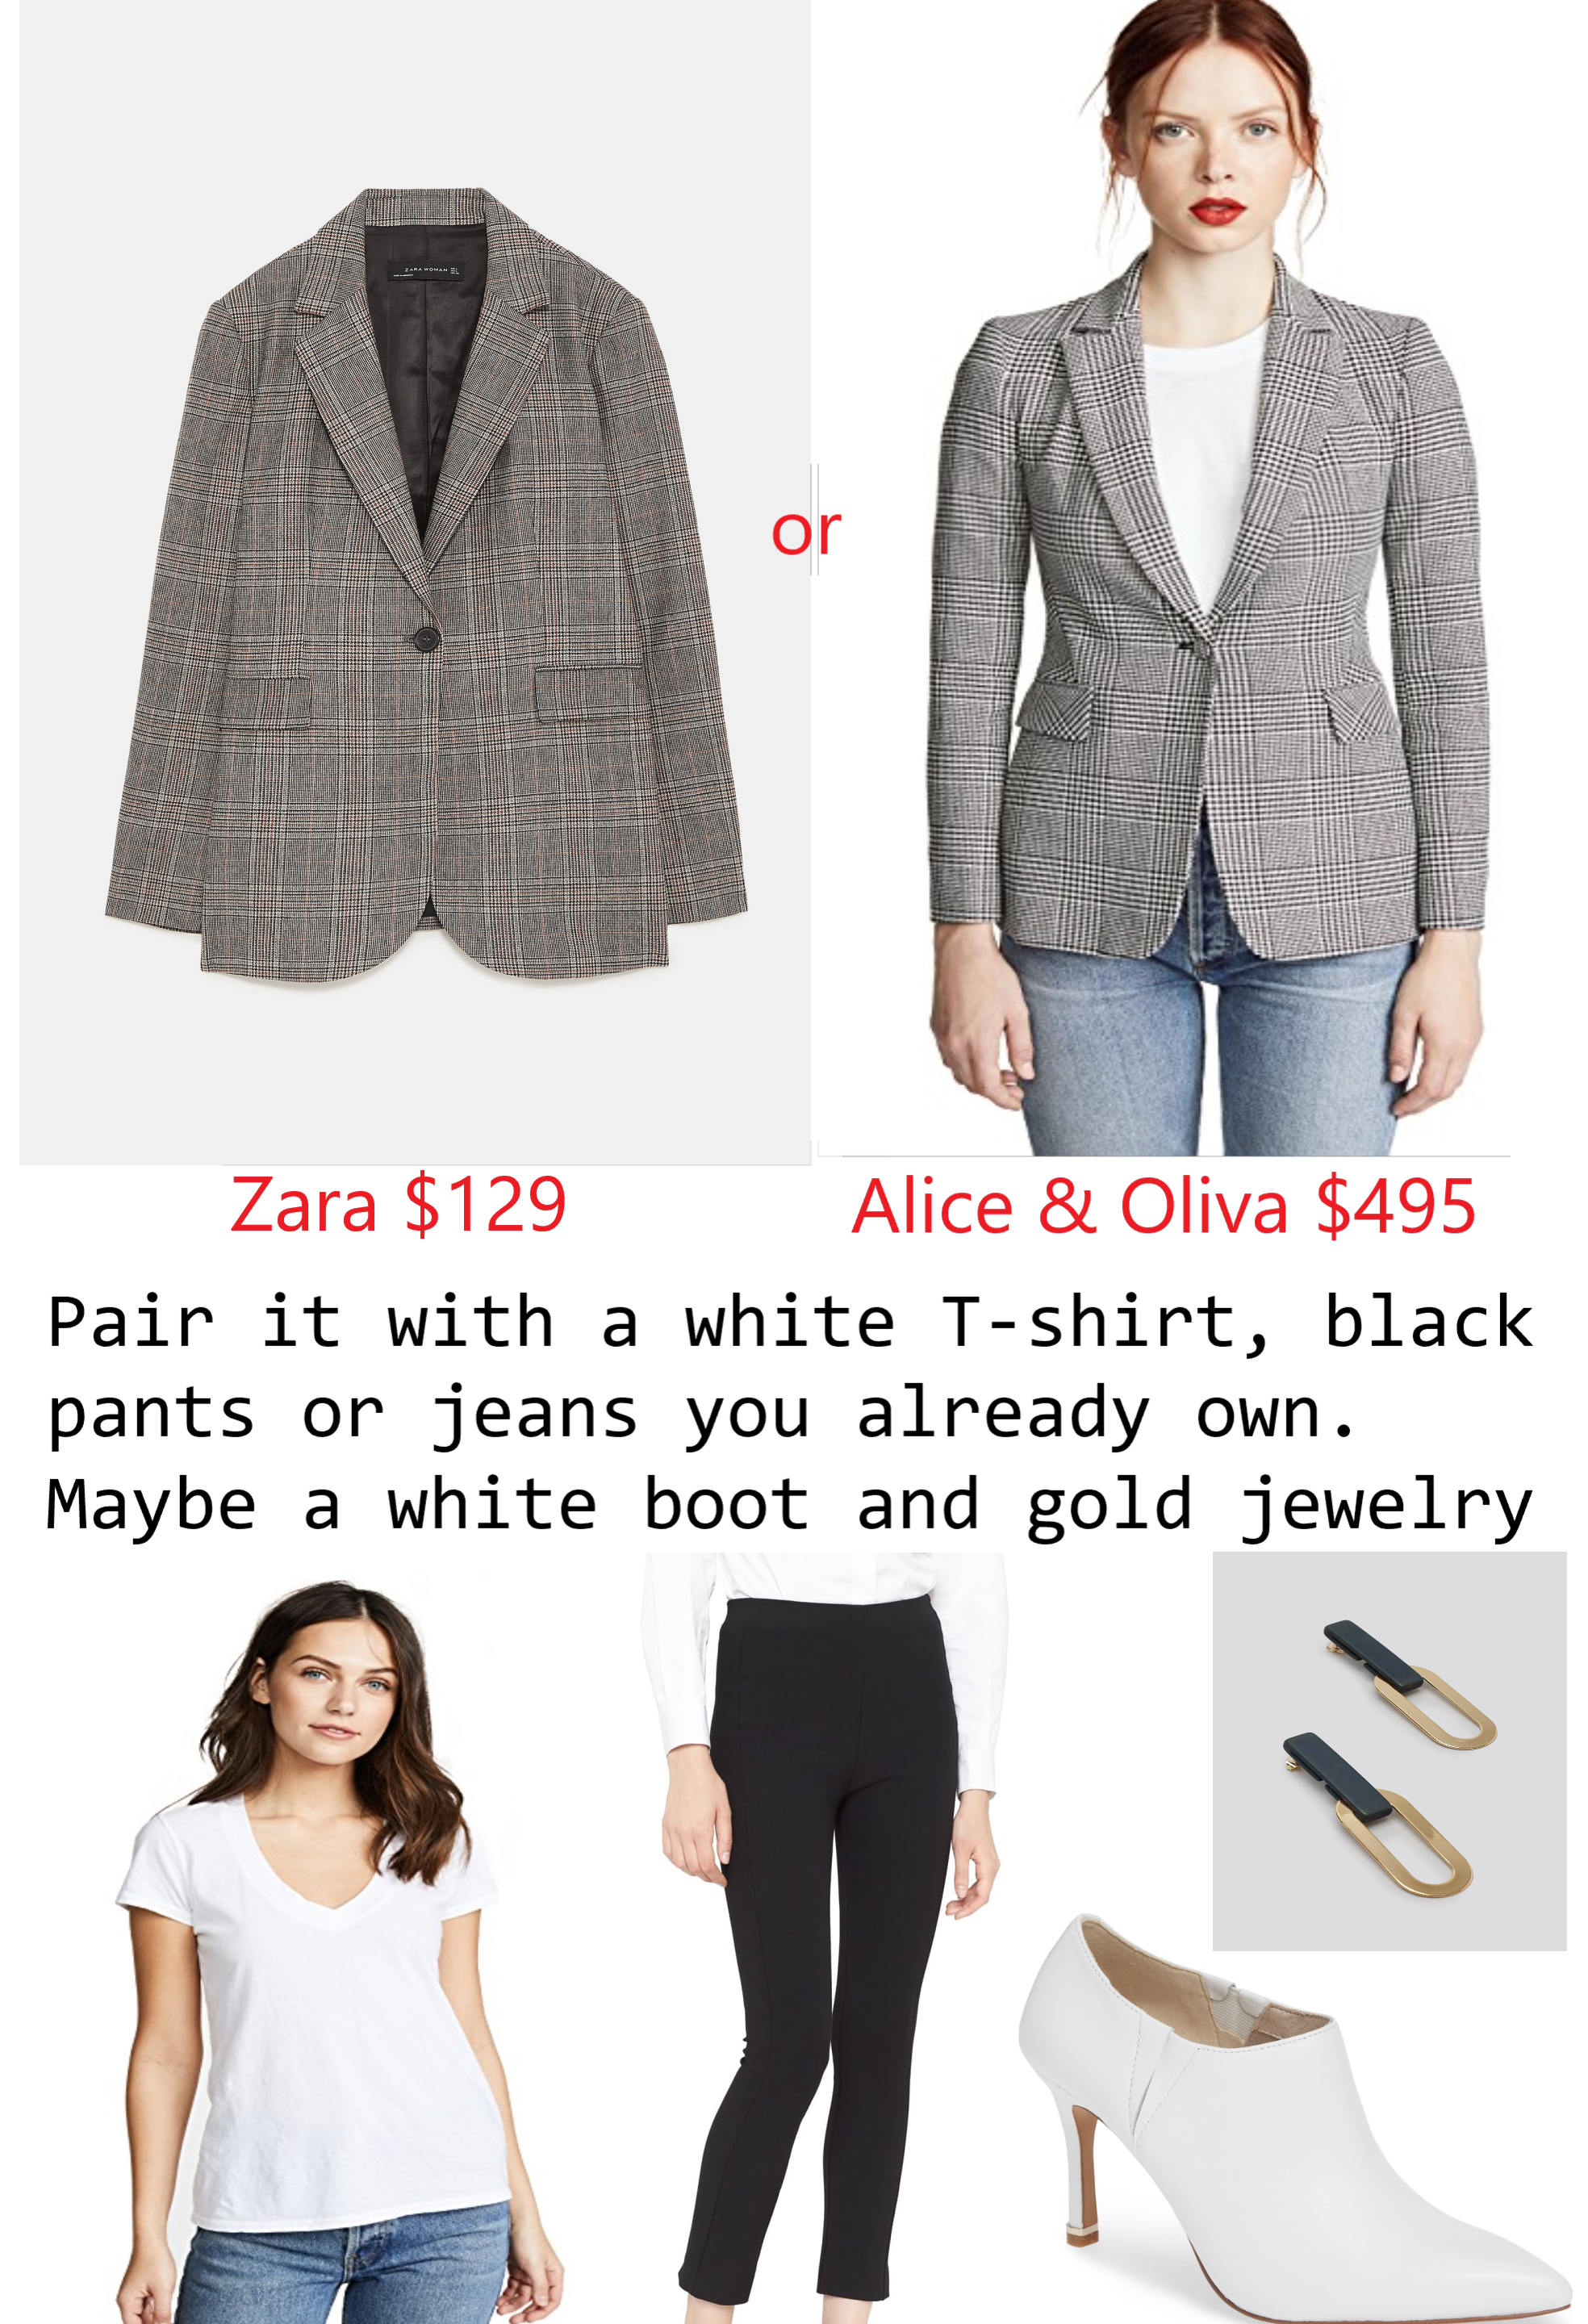 https://www.zara.com/us/en/check-blazer-p07830631.html?v1=6682552&v2=1074648    https://www.shopbop.com/macey-blazer-alice-olivia/vp/v=1/1505191822.htm?fm=search-viewall-shopbysize&os=false